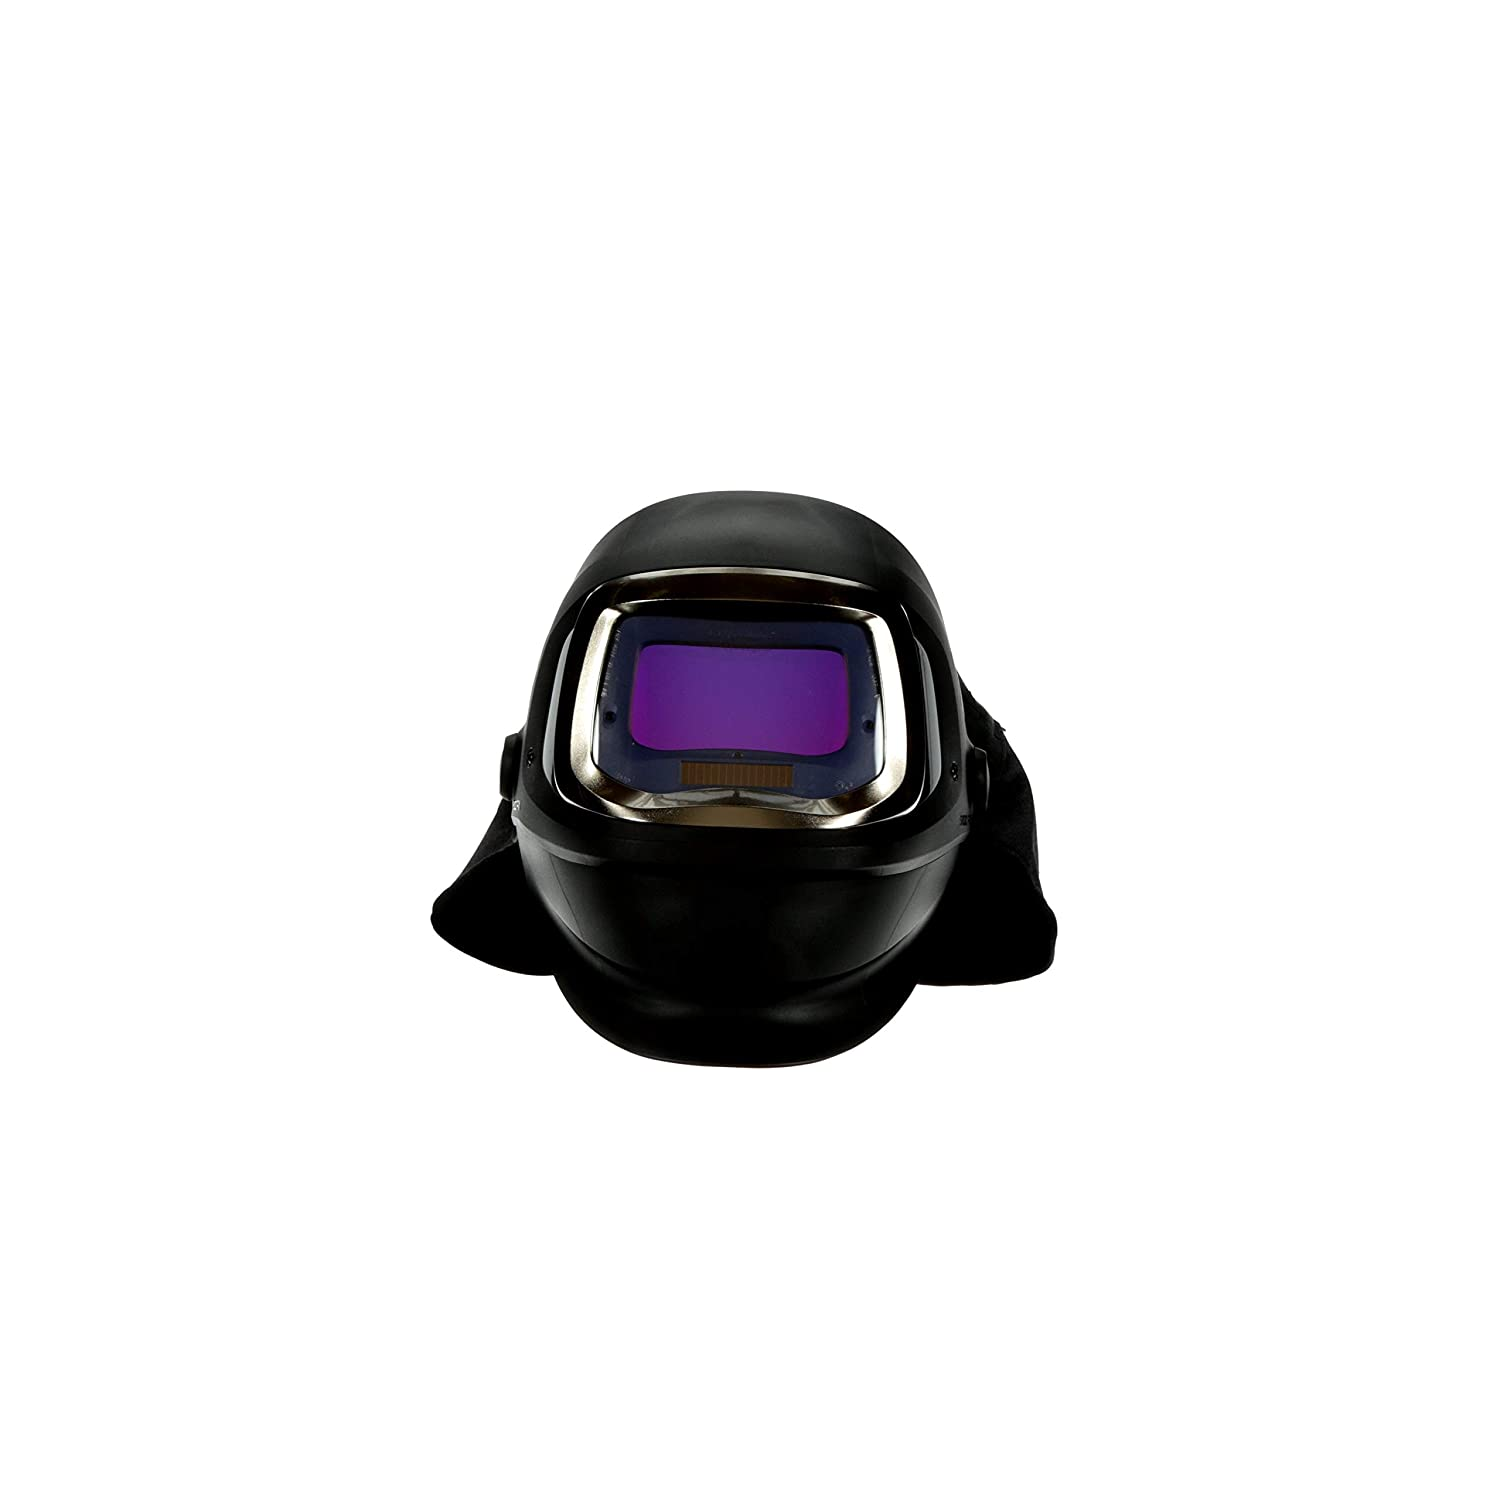 Image of Hard Hat Accessories 3M Adflo Powered Air Purifying Respirator He System W 3M Speedglas Welding Helmet 9100 Fx-Air, 36-1101-30Isw, 1 Ea/Case